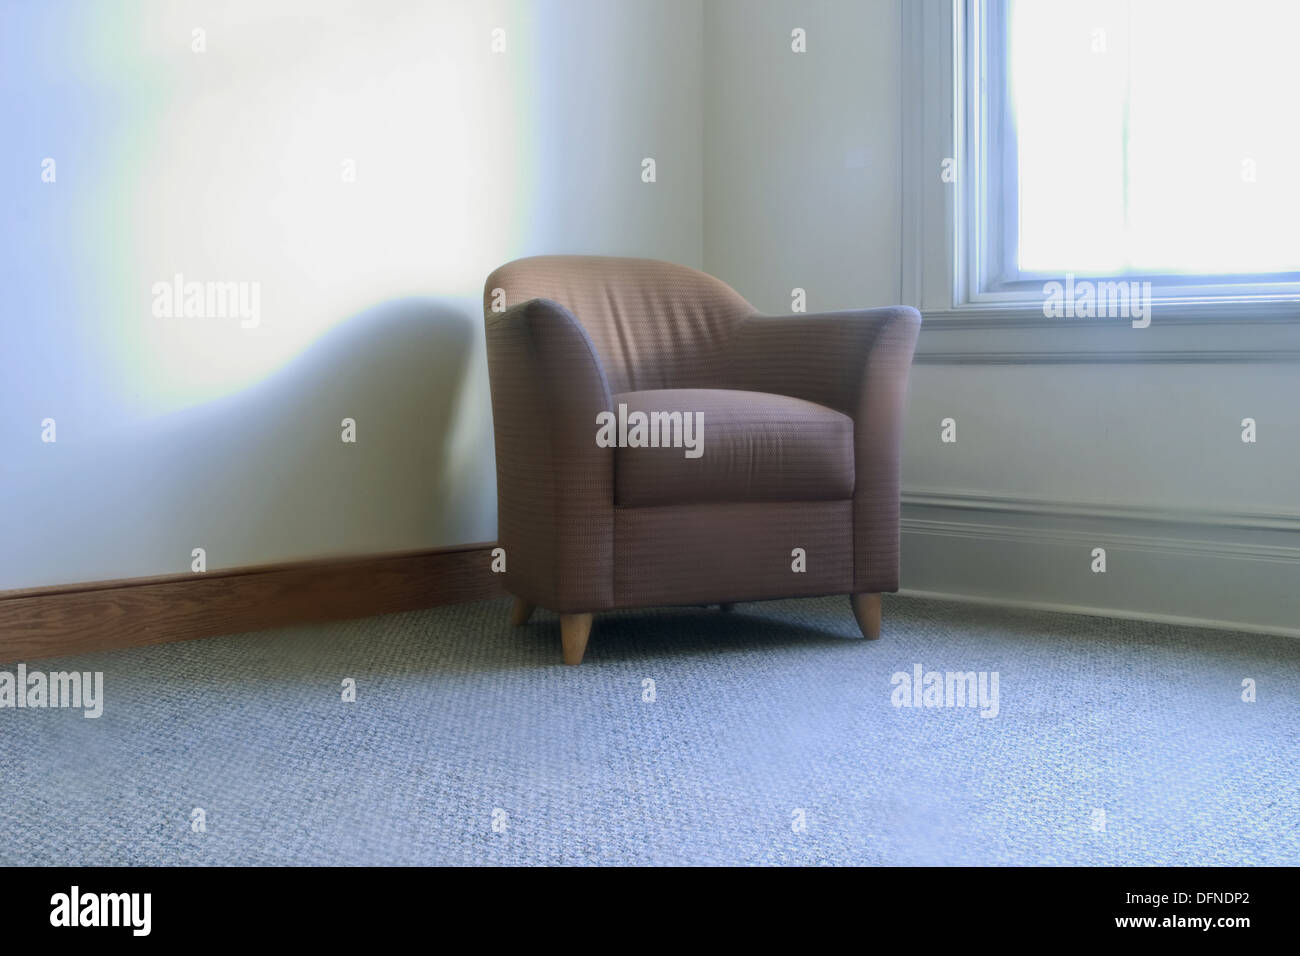 Overstuffed Chair Setting In The Corner By A Window In An Office Building  Hallway.